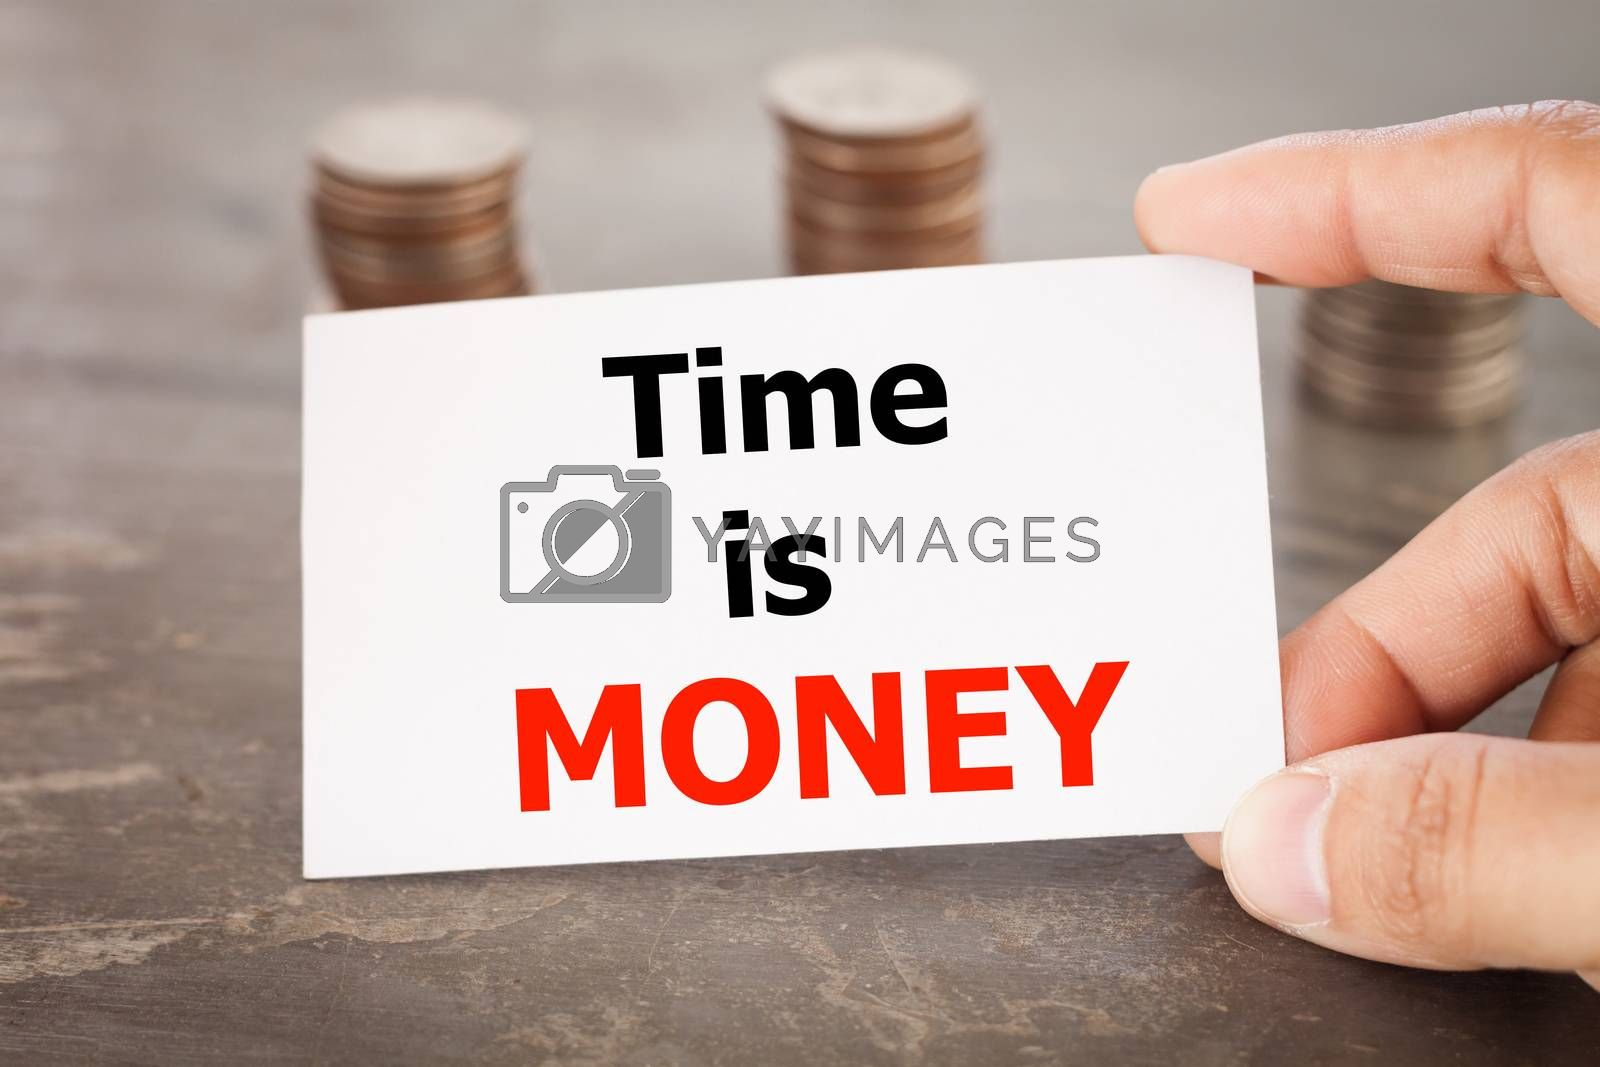 Time is money inspirational quote on name card with coins